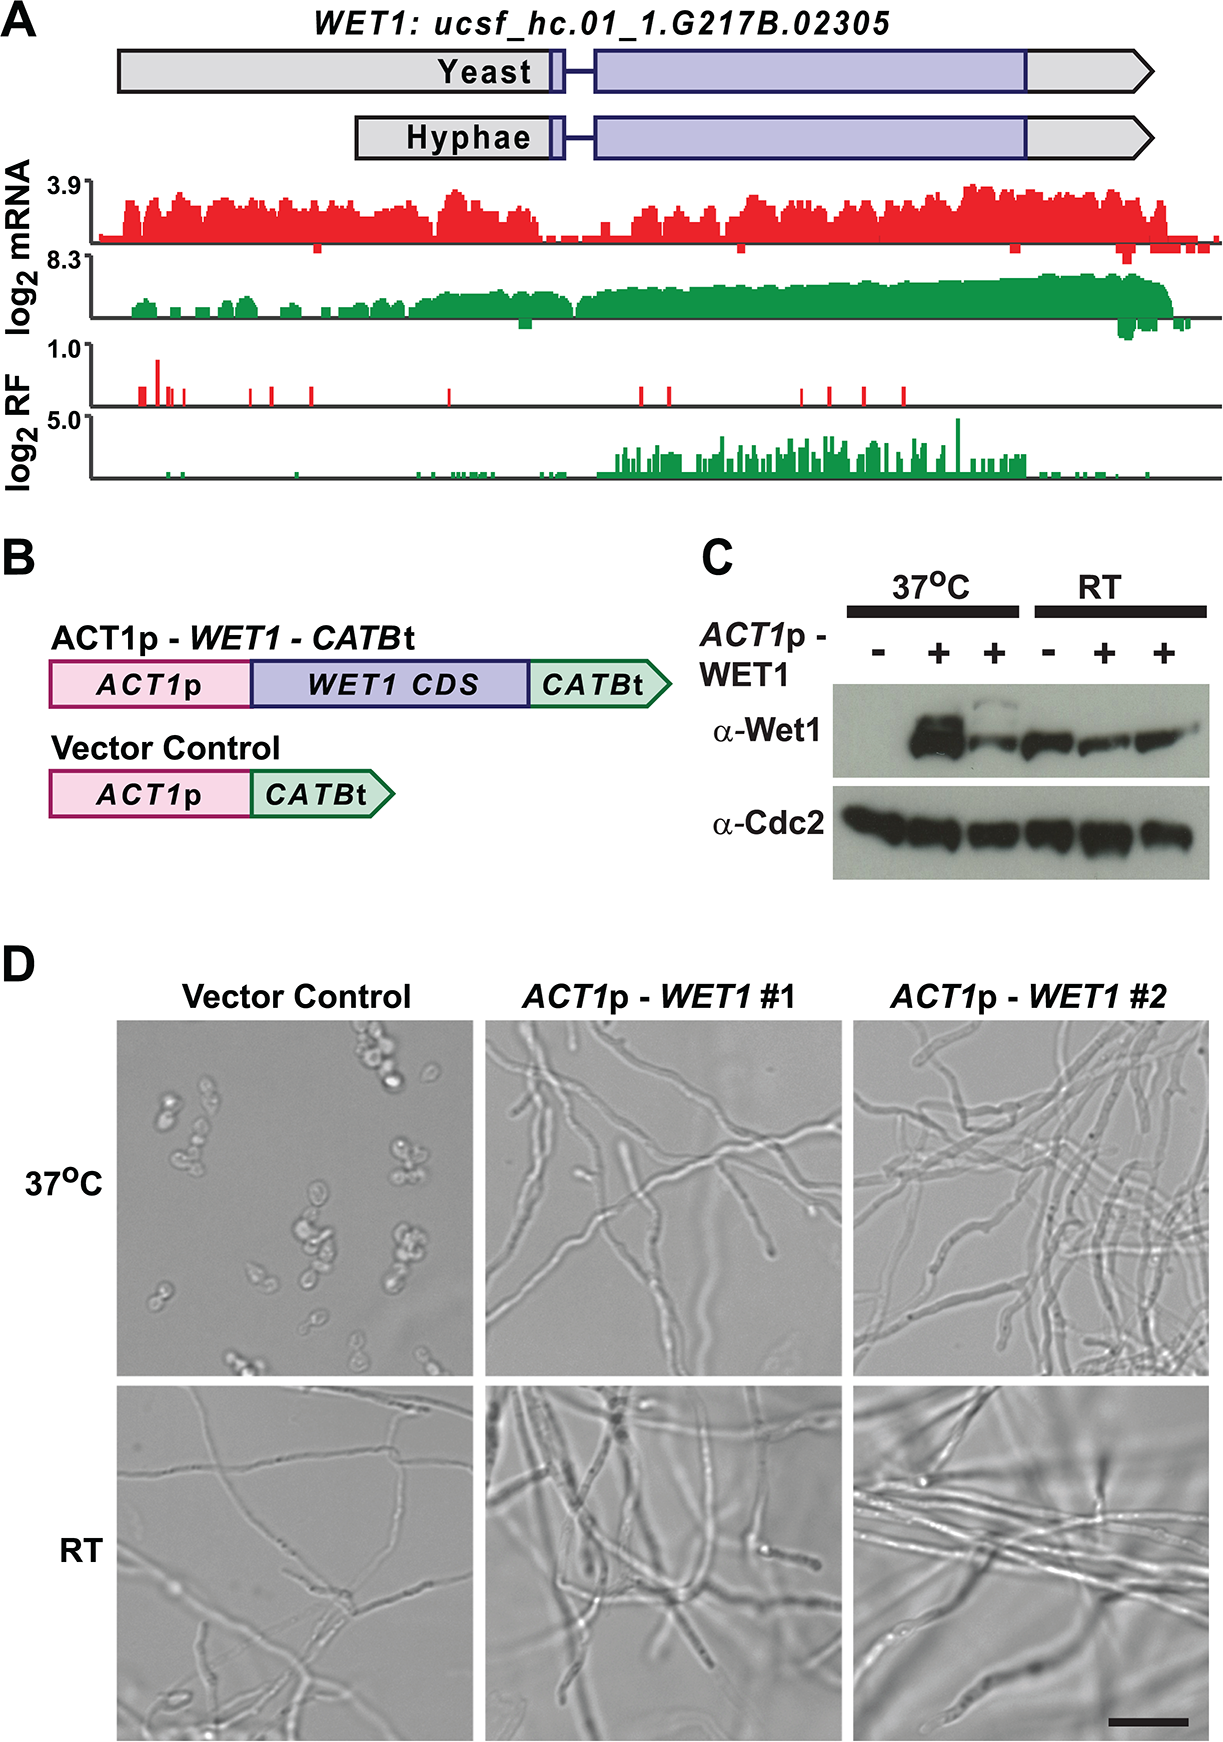 Misregulation of Wet1 expression induces inappropriate hyphal growth at 37°C.